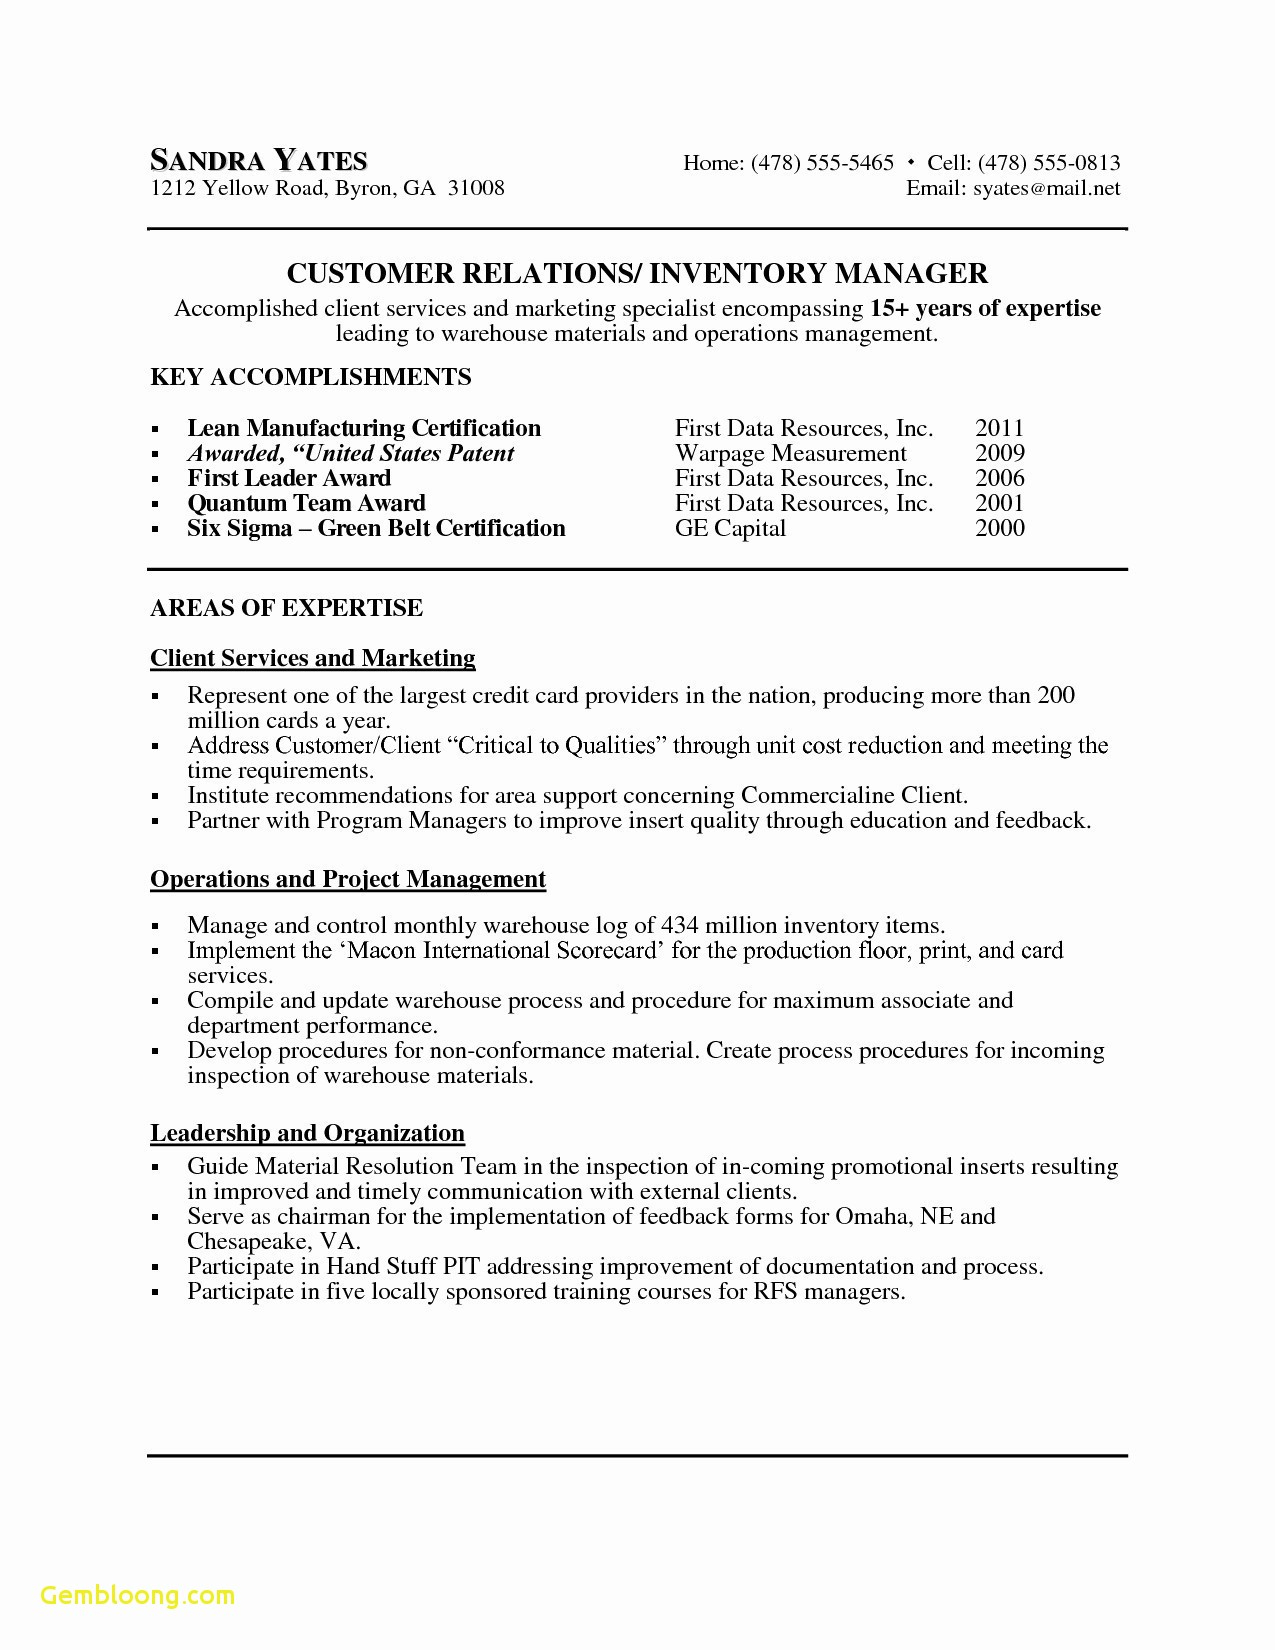 National Honor society Resume Template - 6 Good Vibes Customer Service Arcadia Group Email